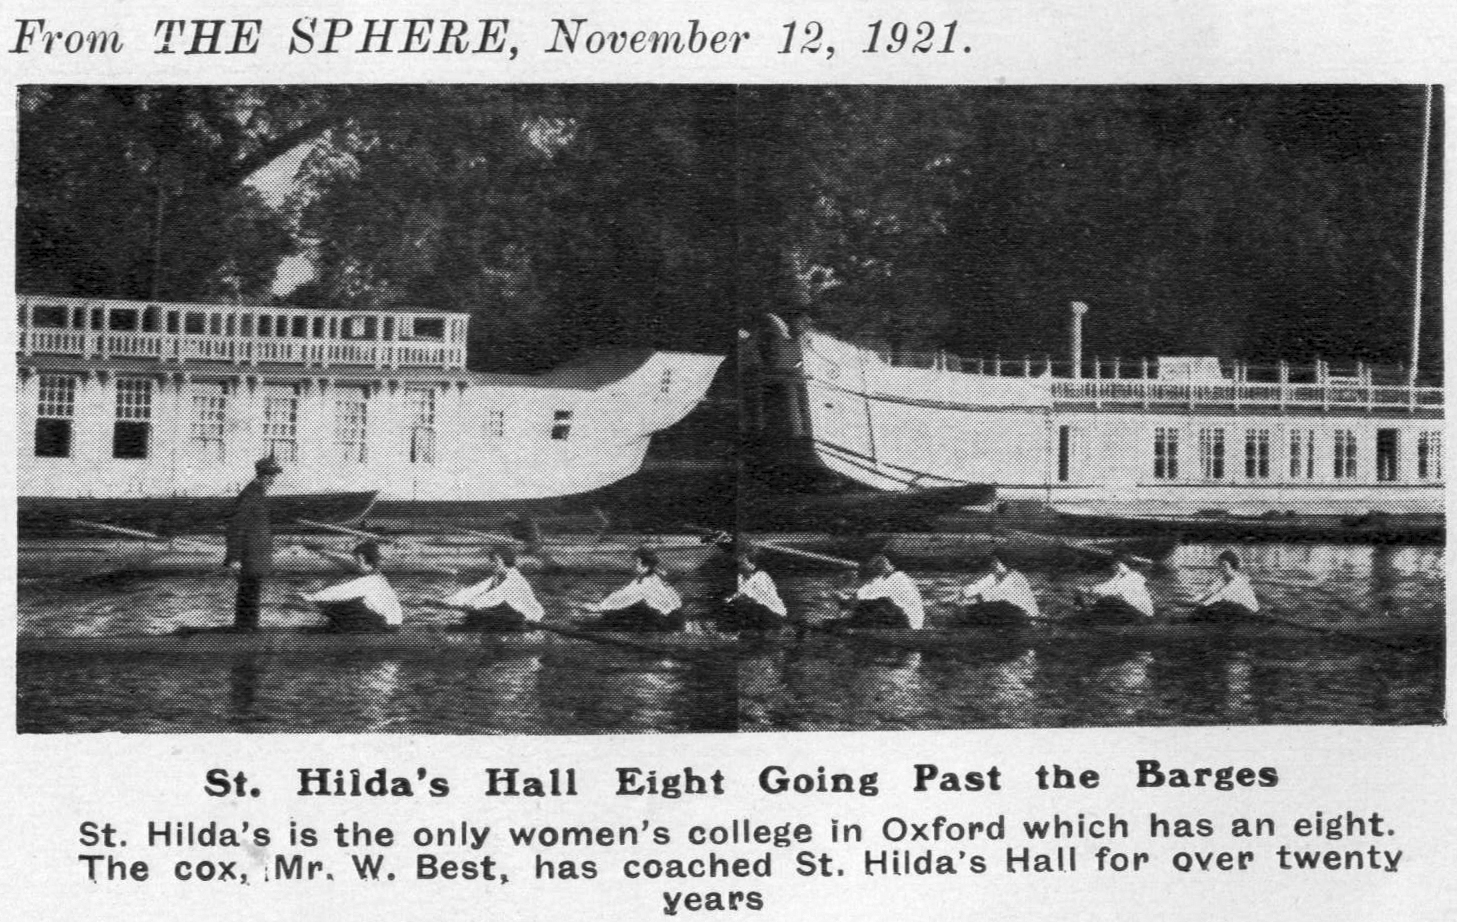 St Hilda's was the only women's college in Oxford to have a rowing eight in 1921.